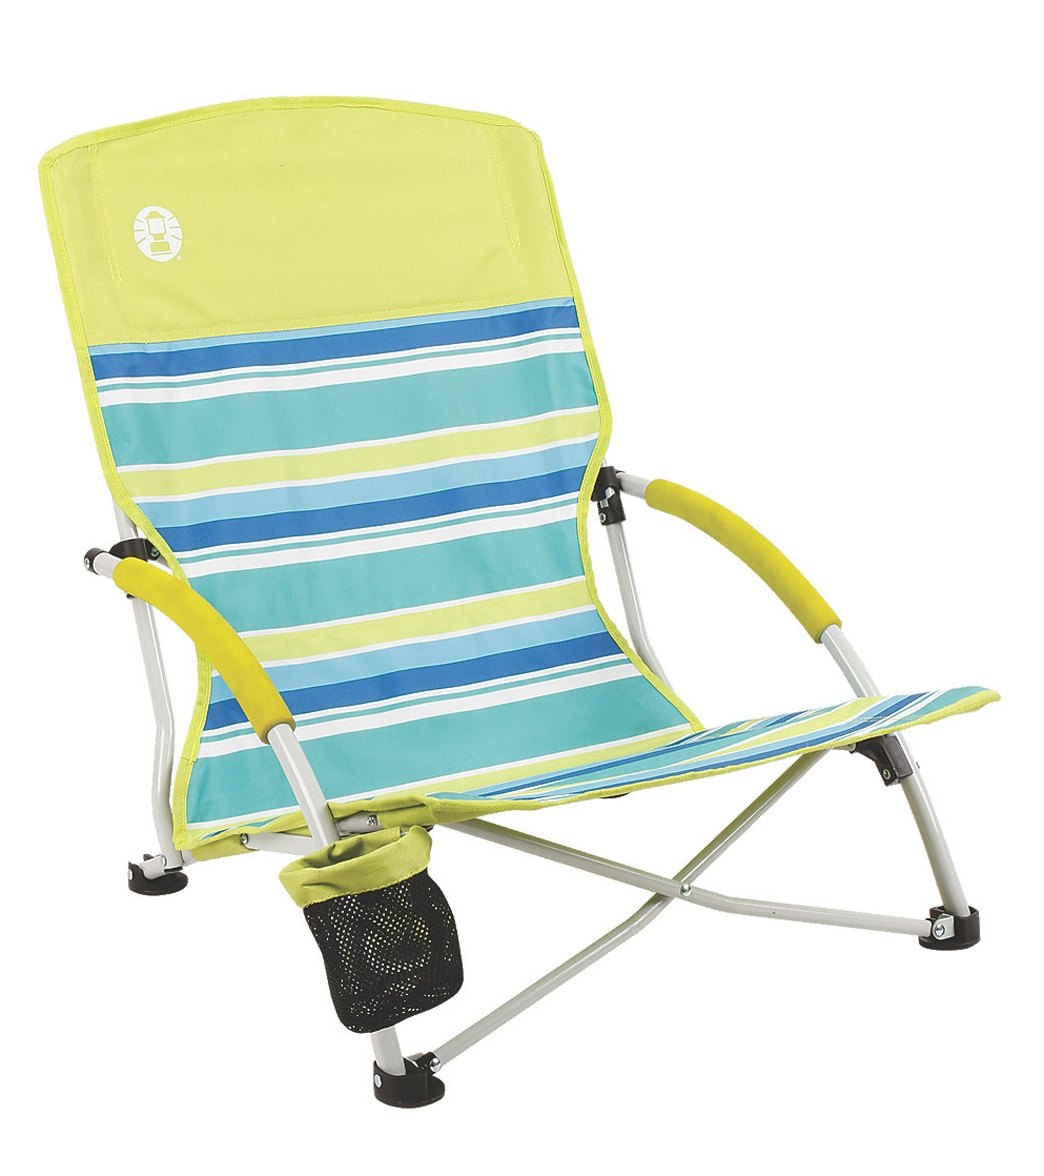 Coleman Deluxe Low Sling Beach Chair at SwimOutlet – Deluxe Beach Chairs